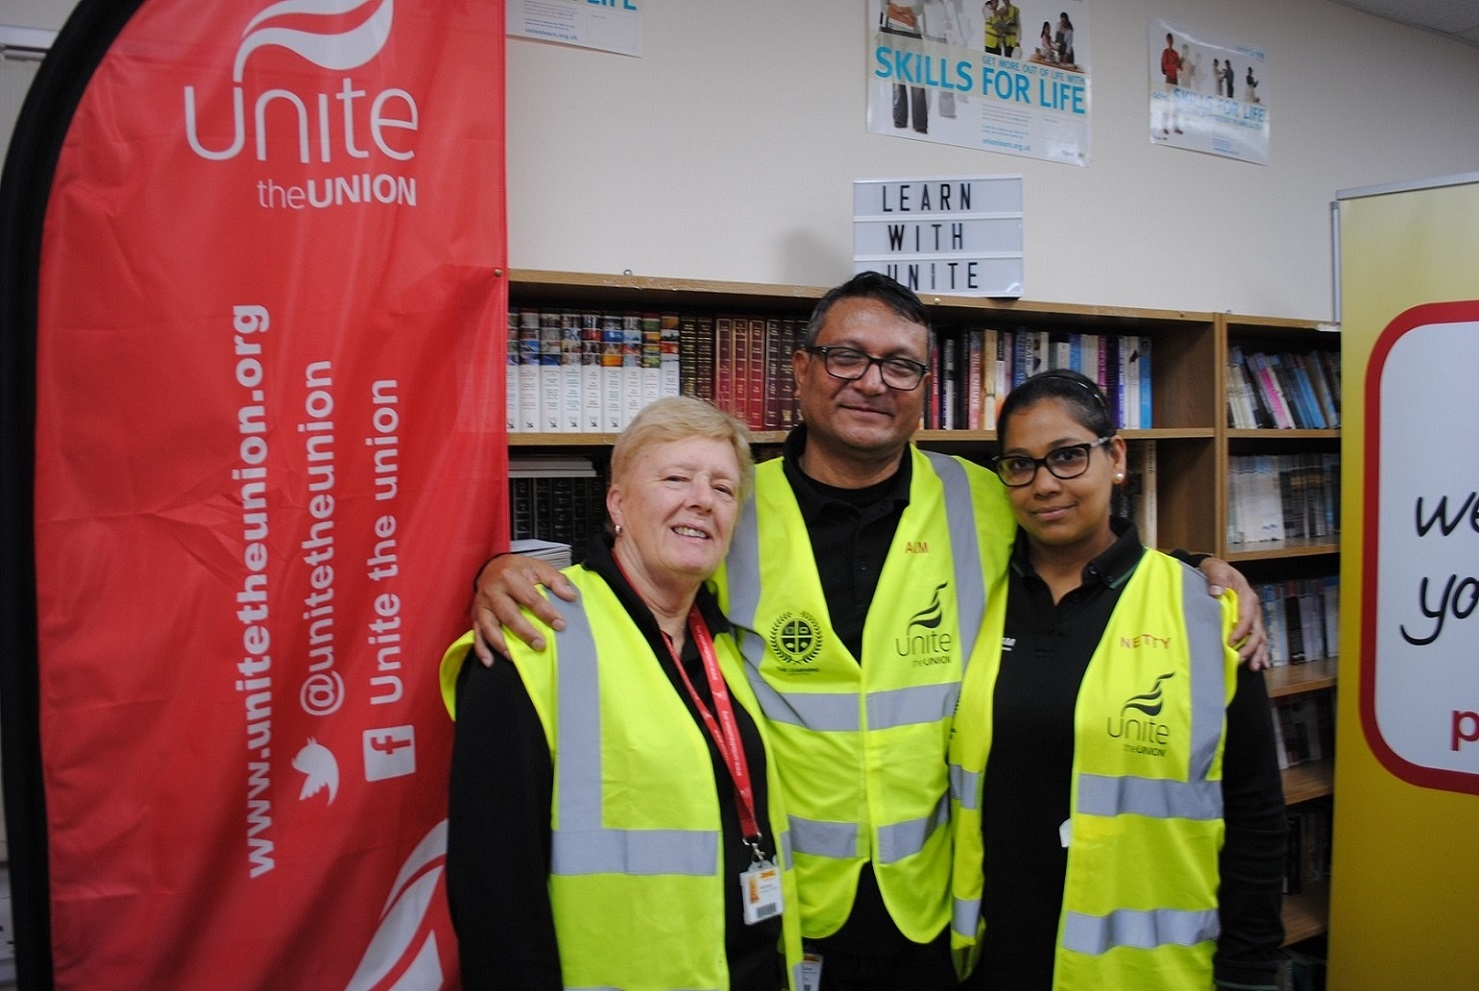 Unite ULRs in Swindon have revitalised workplace learning.